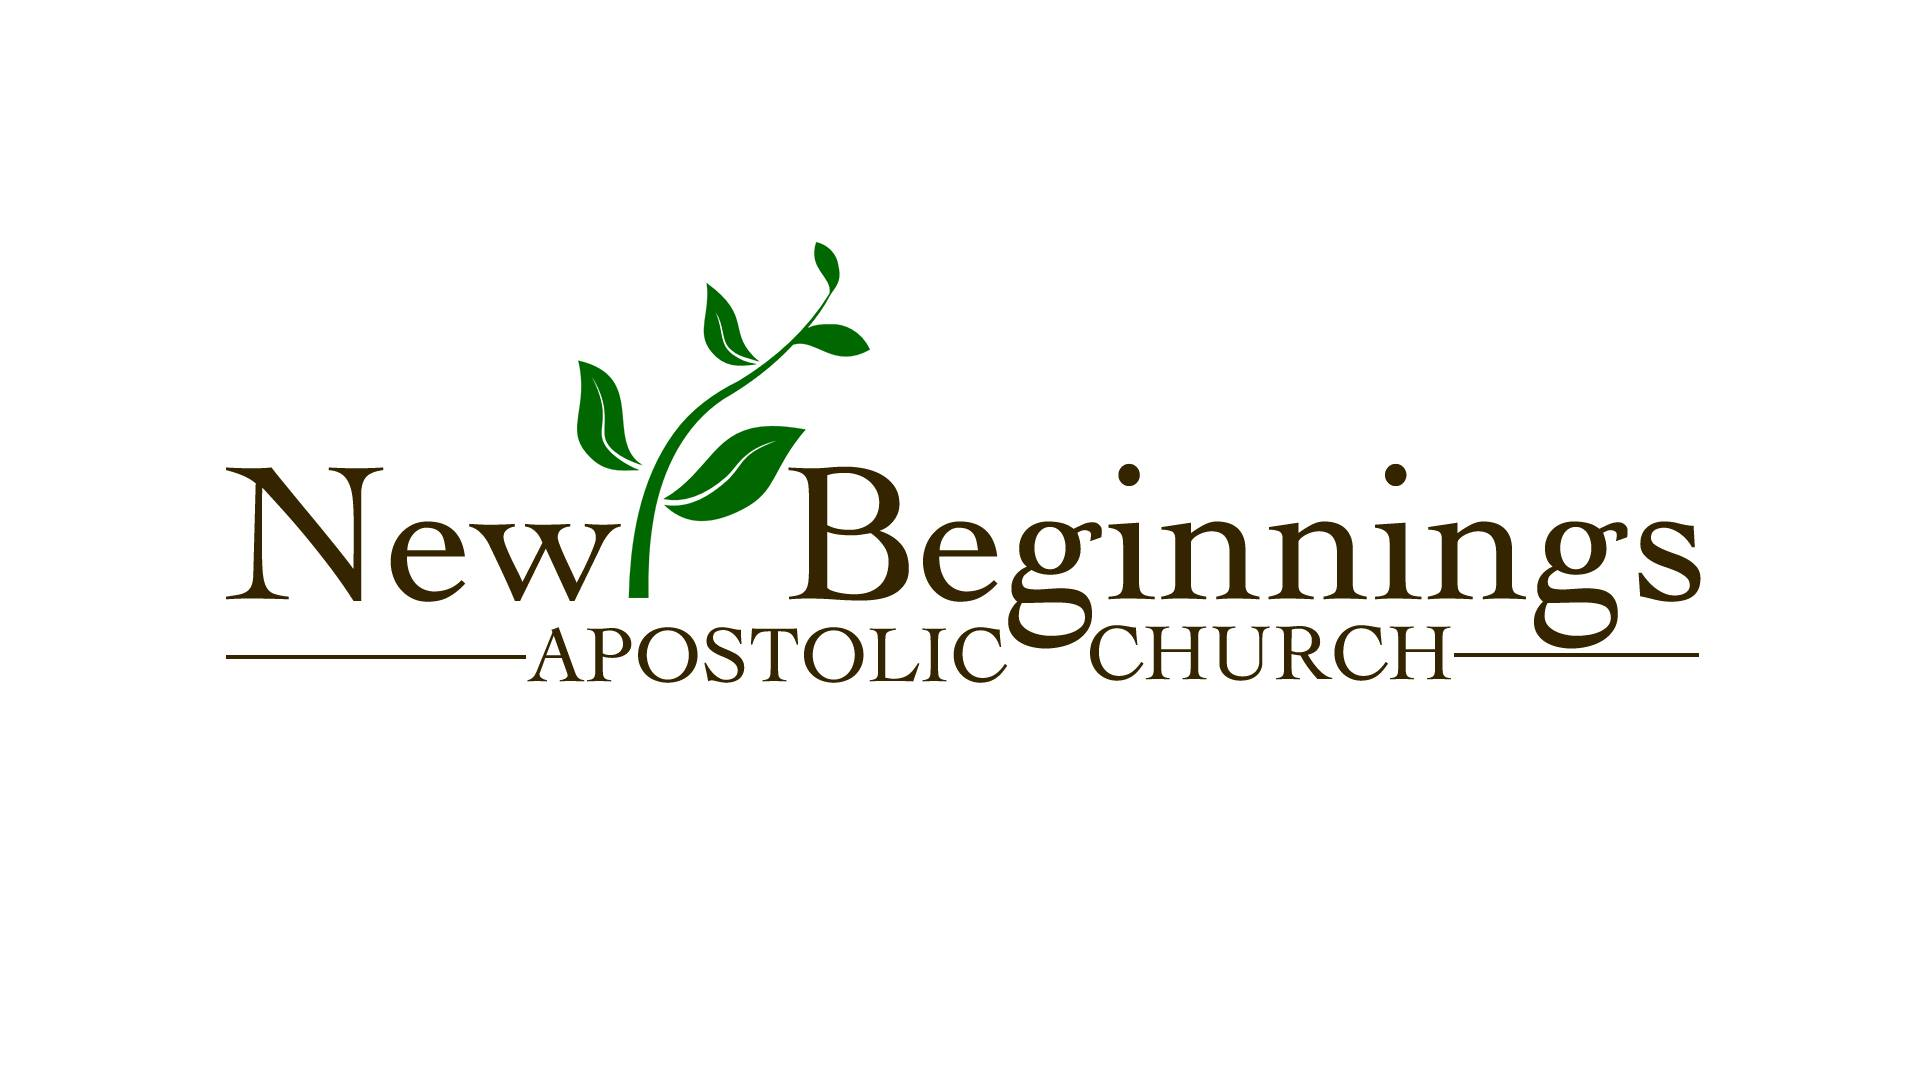 New Beginnings Apostolic Church